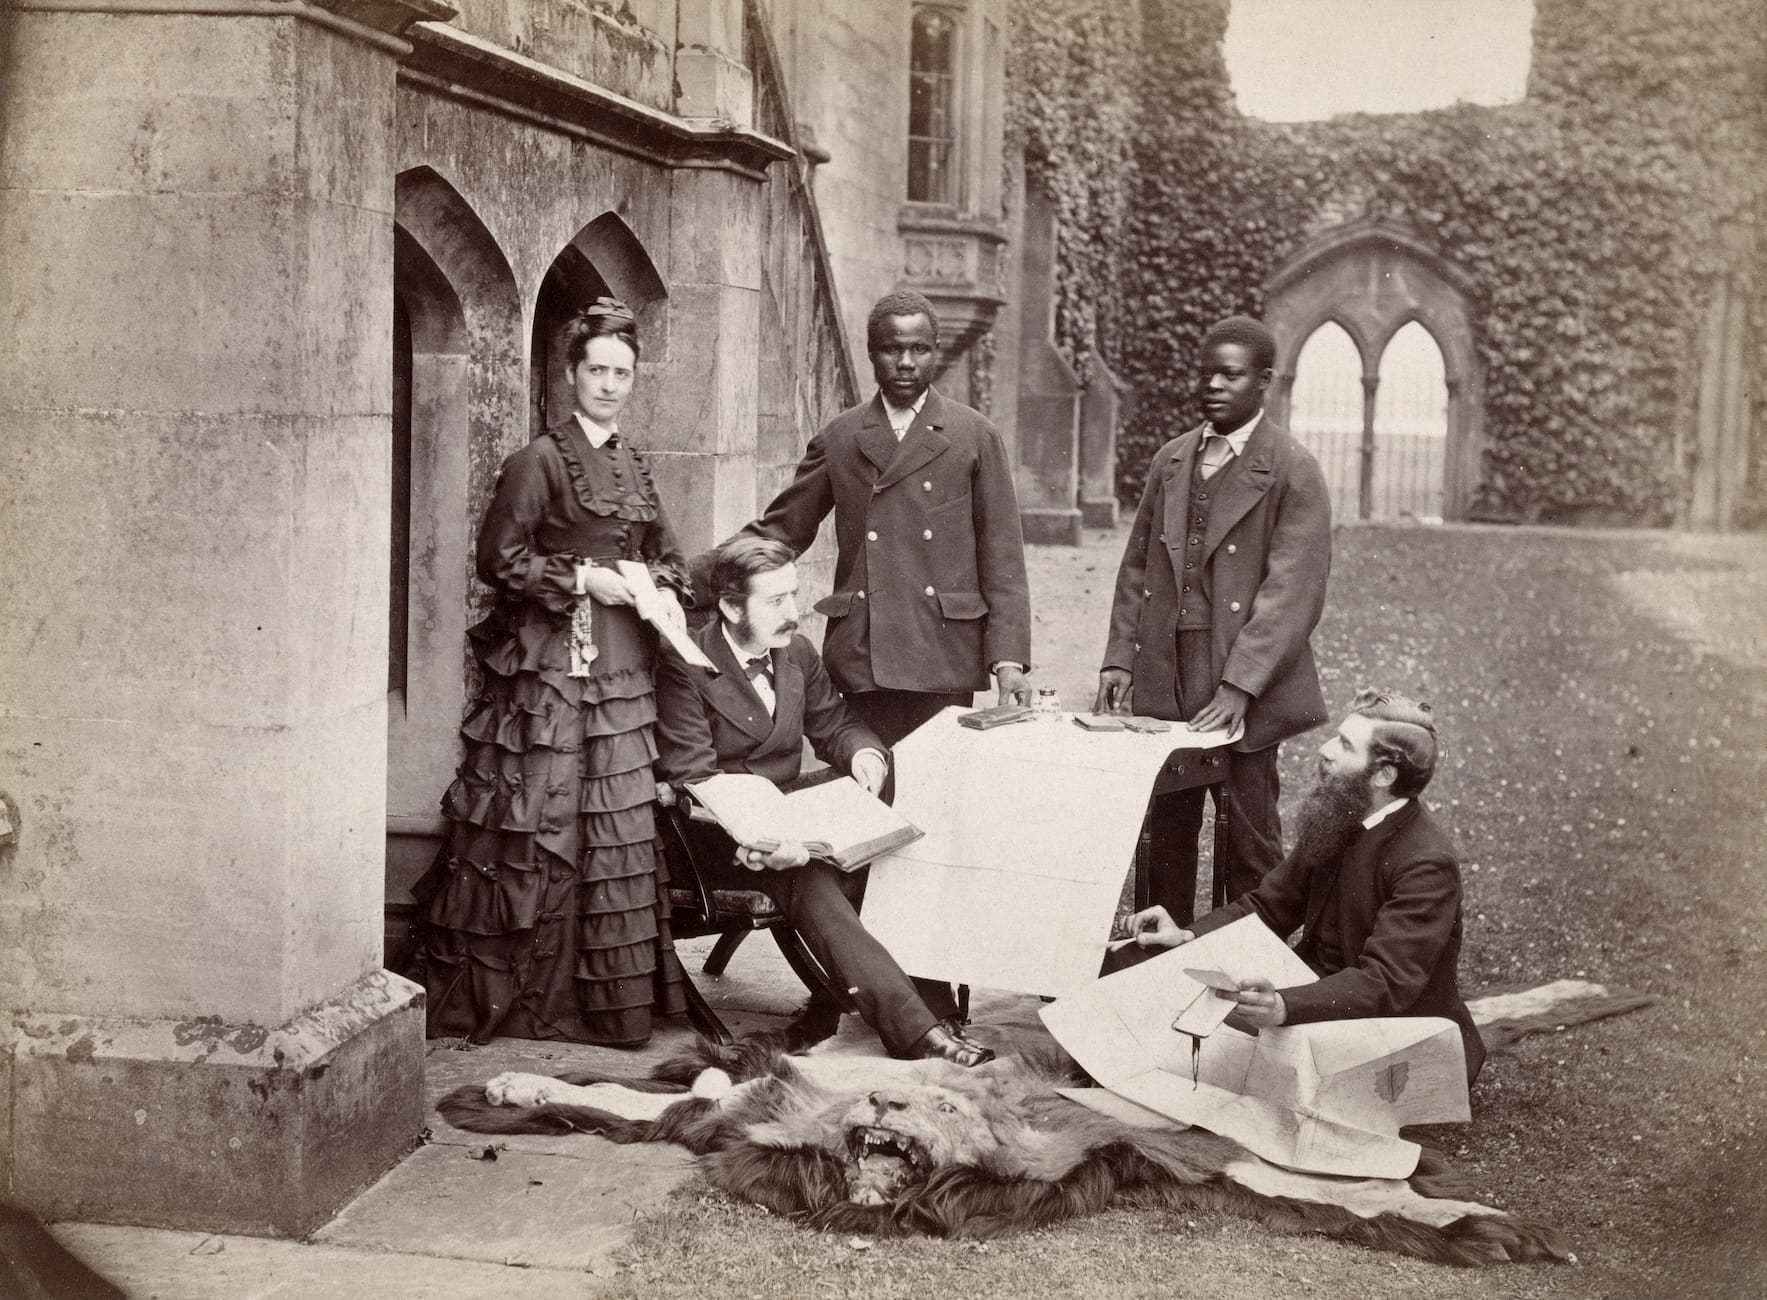 From left to right: Agnes Livingstone, Thomas Livingstone, daughter and son of David Livingstone, Abdullah Susi, James Chuma and Reverend Horace Waller, by R Allen & Sons, 1874